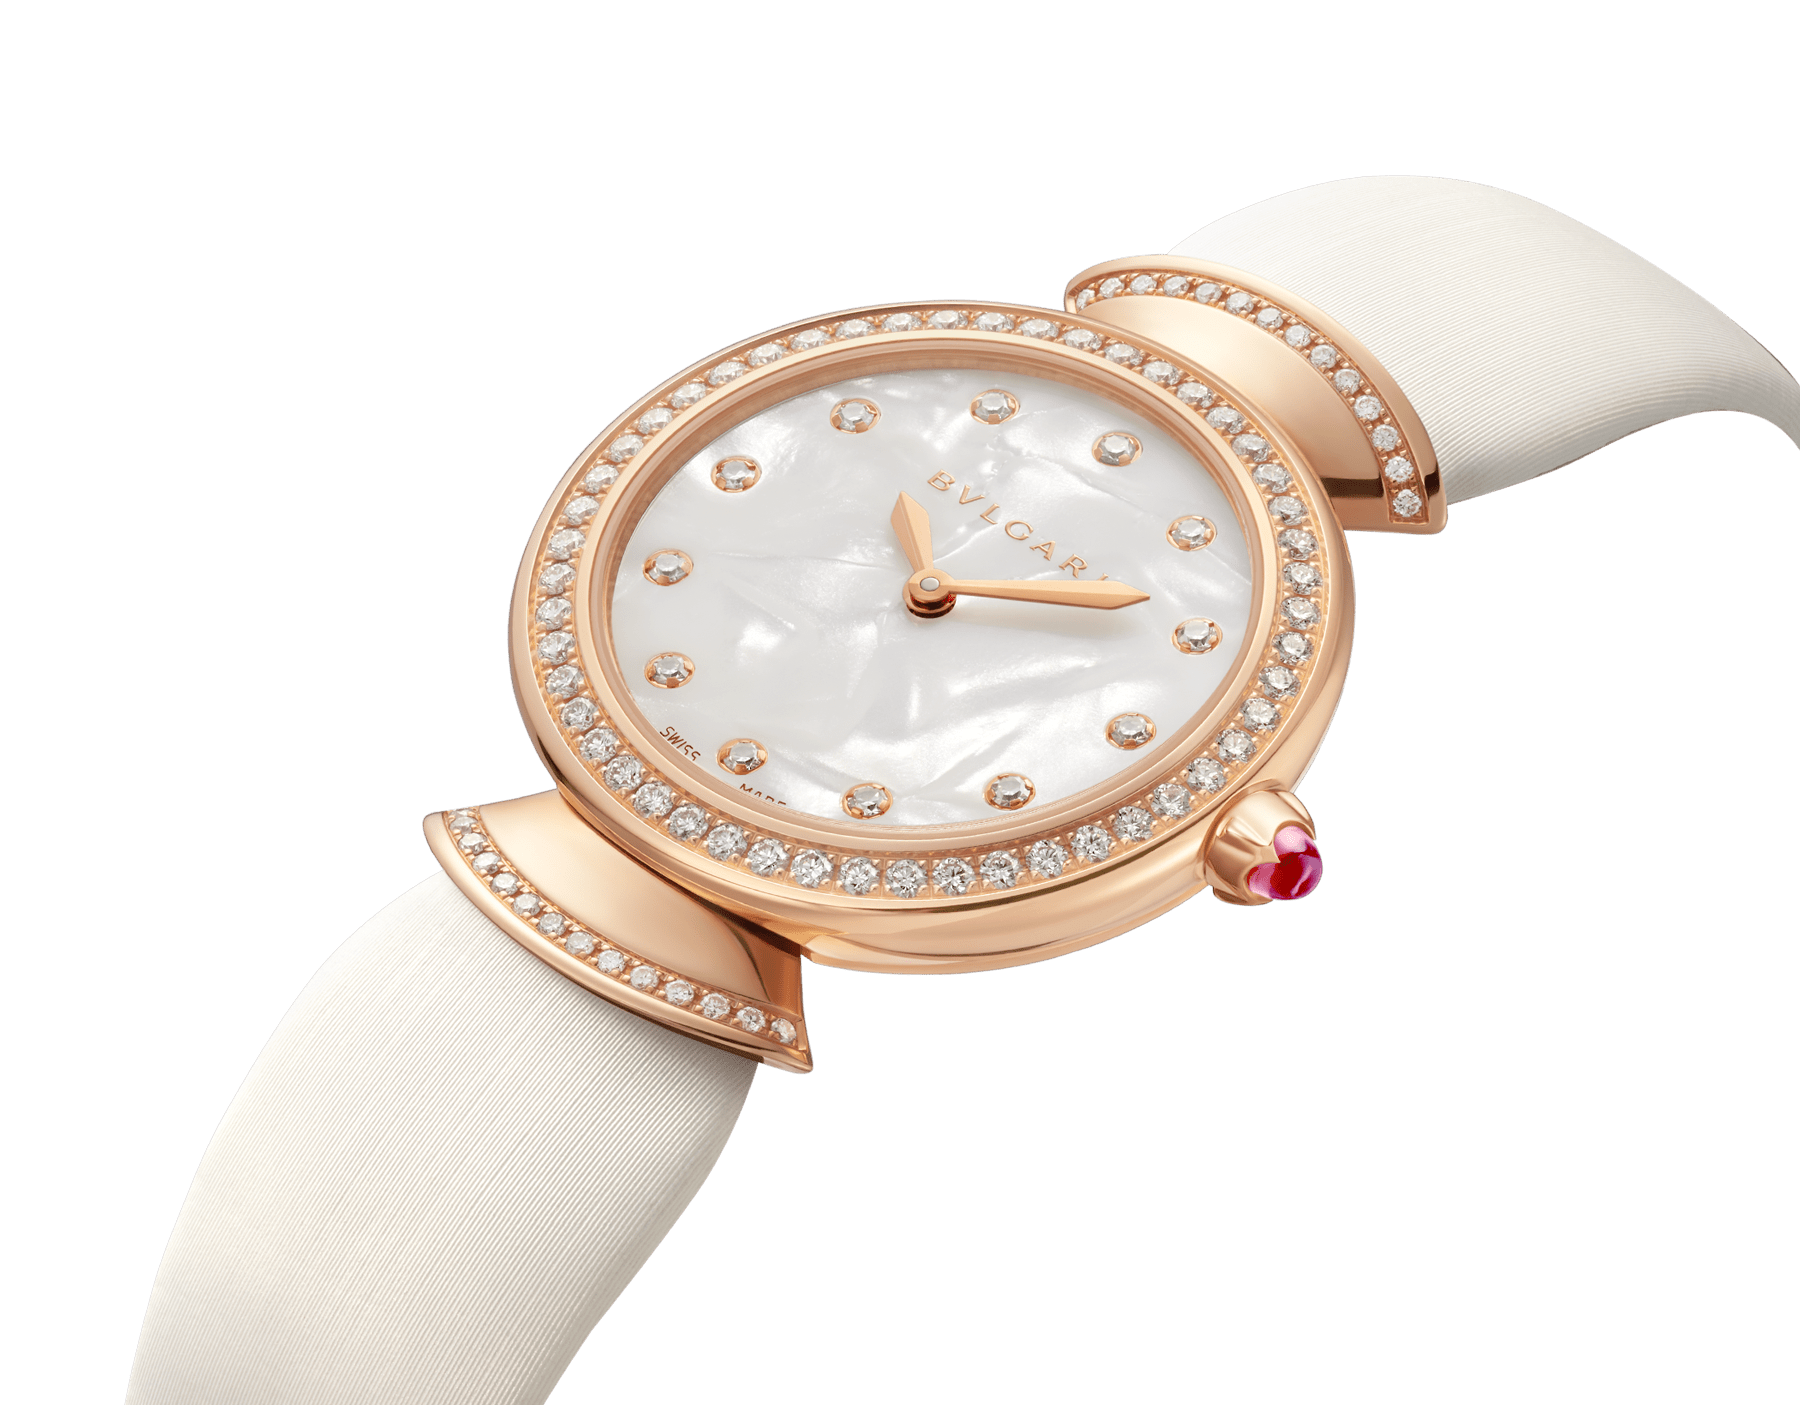 Montre DIVAS' DREAM avec boîtier en or rose 18 K serti de diamants taille brillant, cadran en acétate naturel, index sertis de diamants et bracelet en satin blanc 102433 image 2